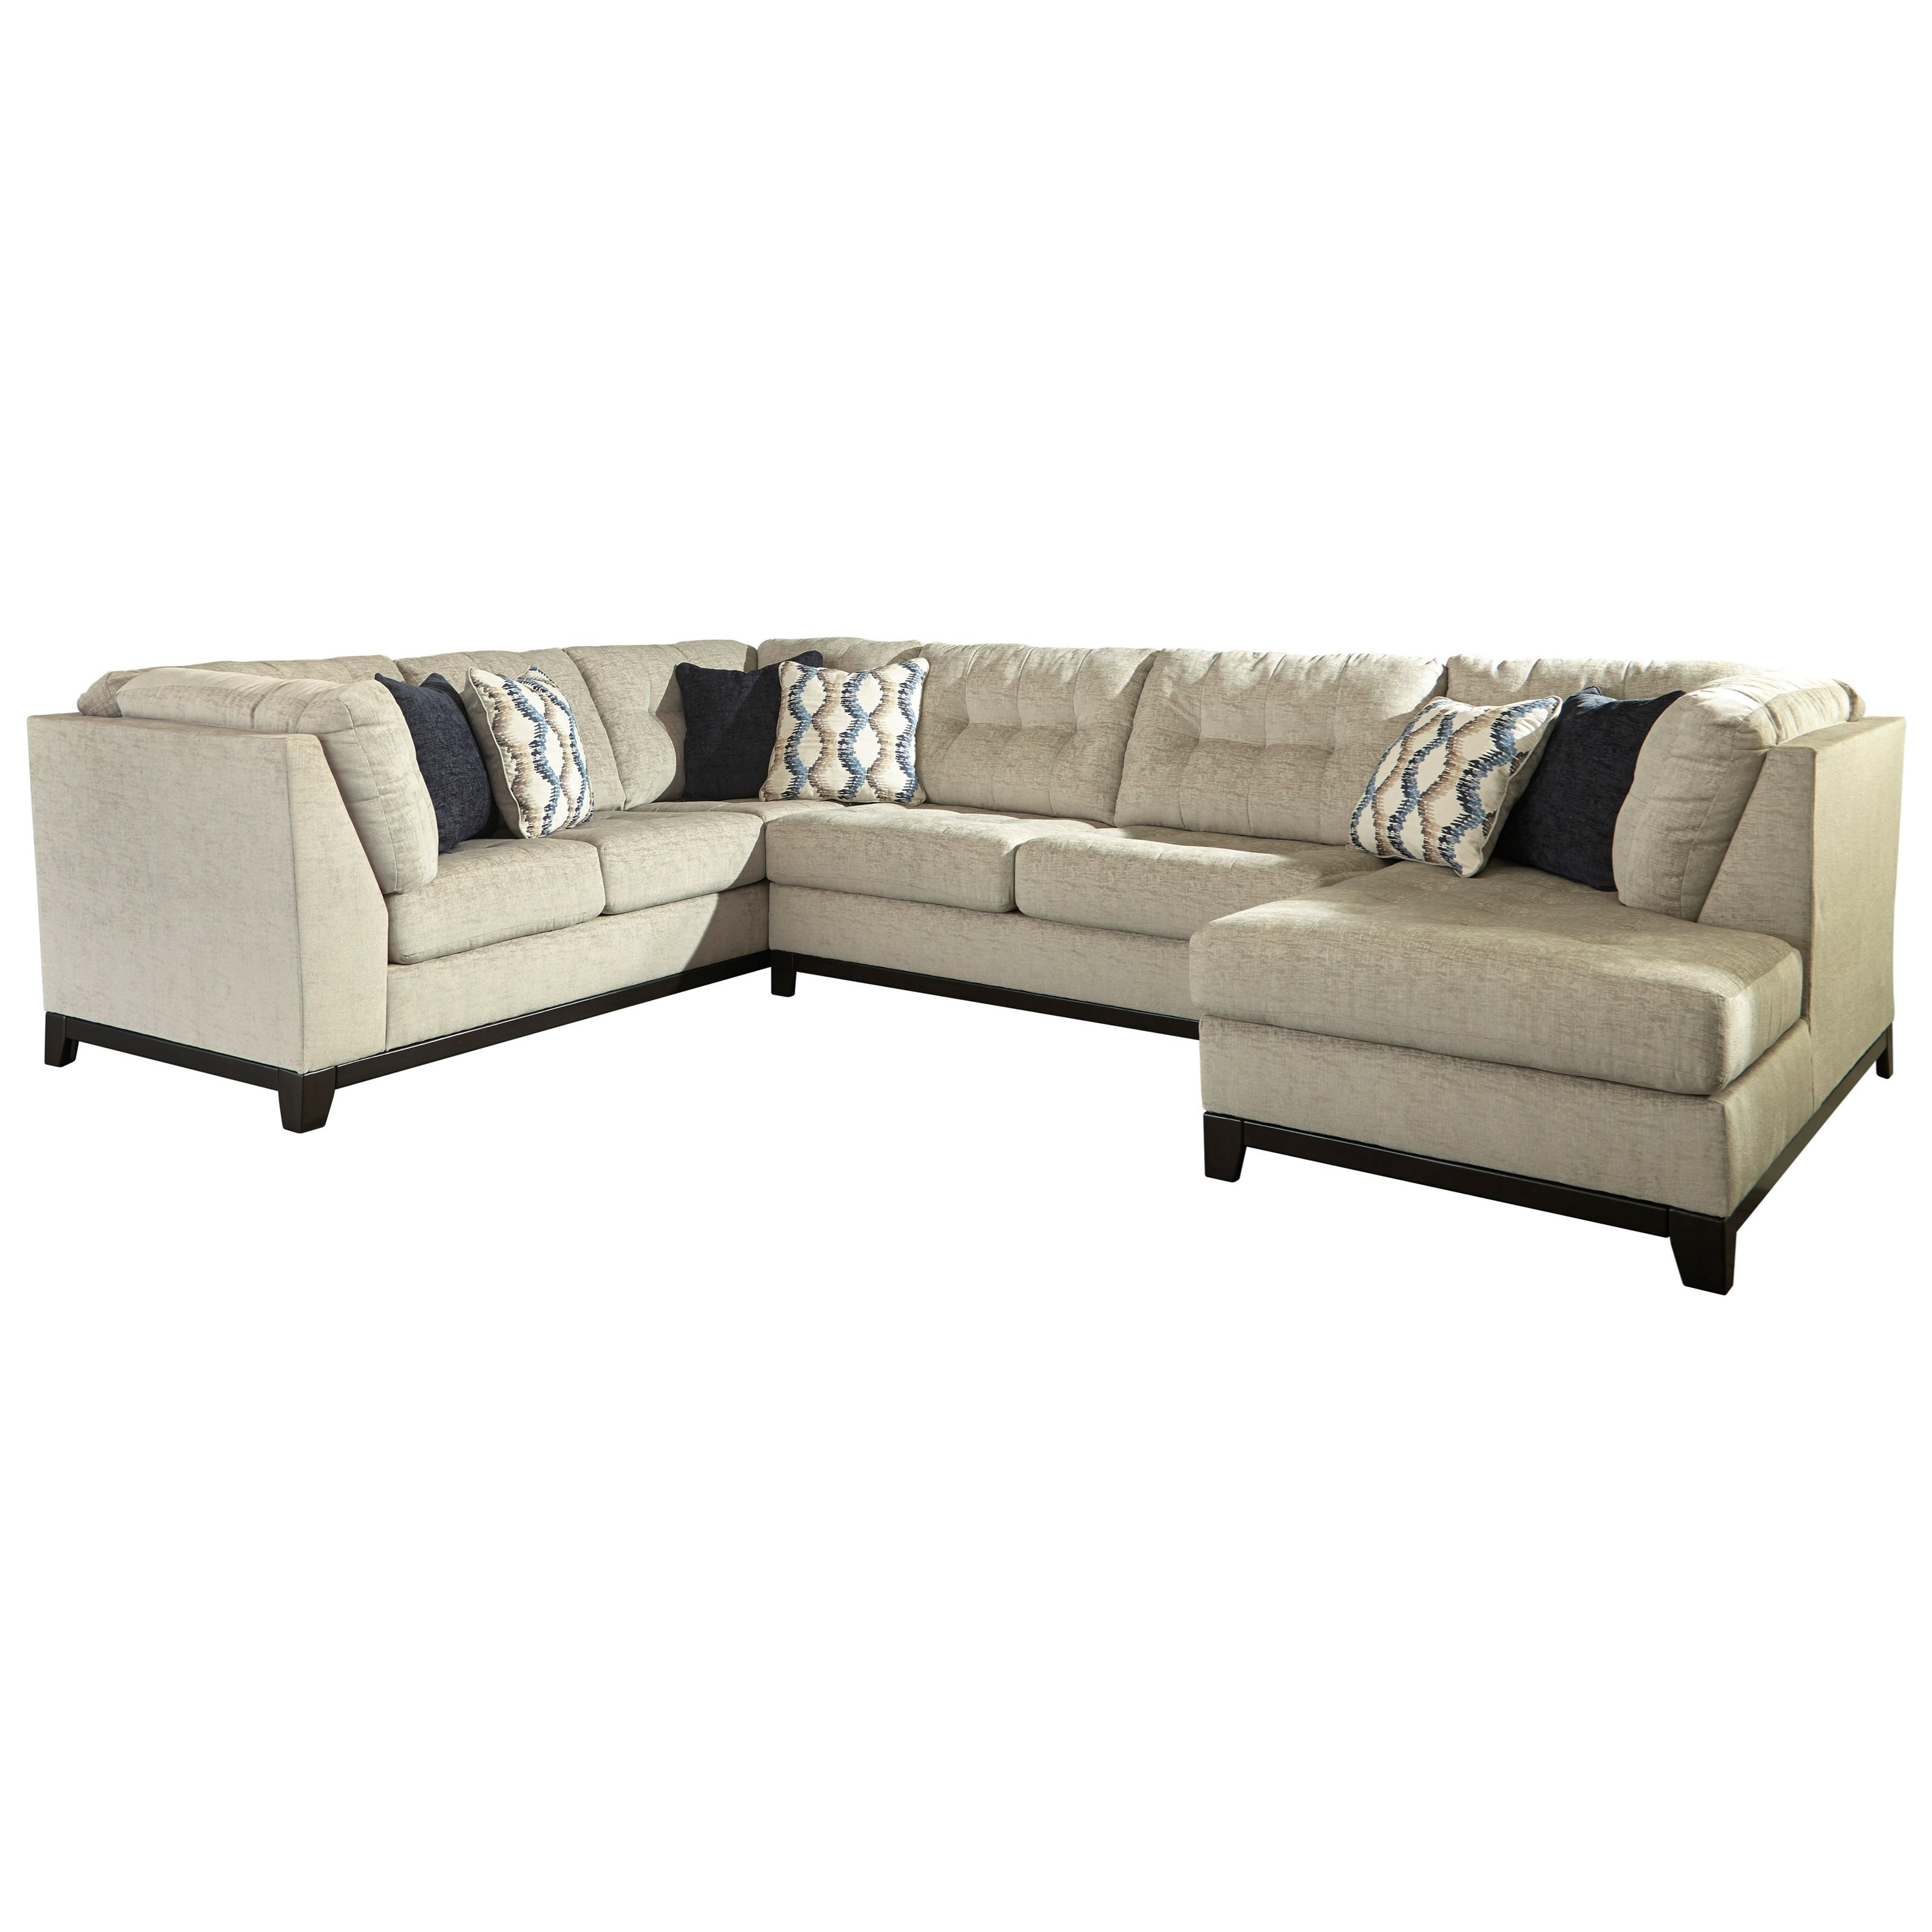 Trendz Bennington 3 Piece Sectional With Right Chaise | Ruby Gordon Throughout Gordon 3 Piece Sectionals With Raf Chaise (View 3 of 25)